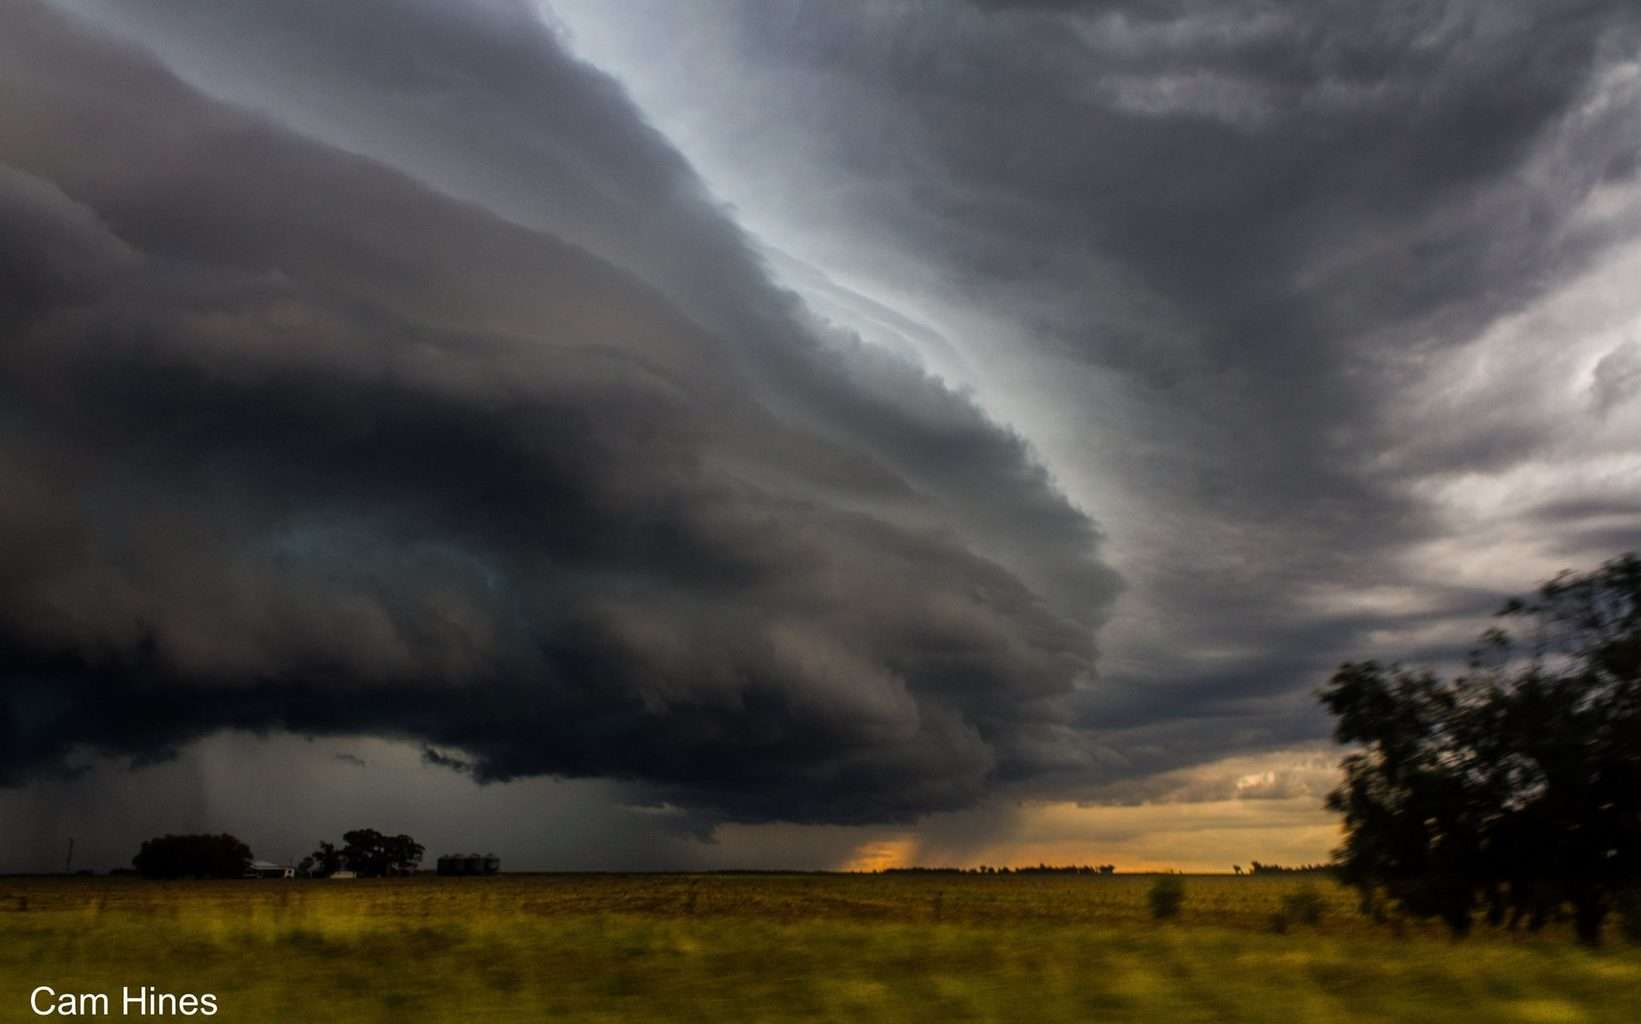 Australia Day, January 26 2015.  Storm chase earlier this year with good mates and a HP supercell near Pittsworth, QLD.